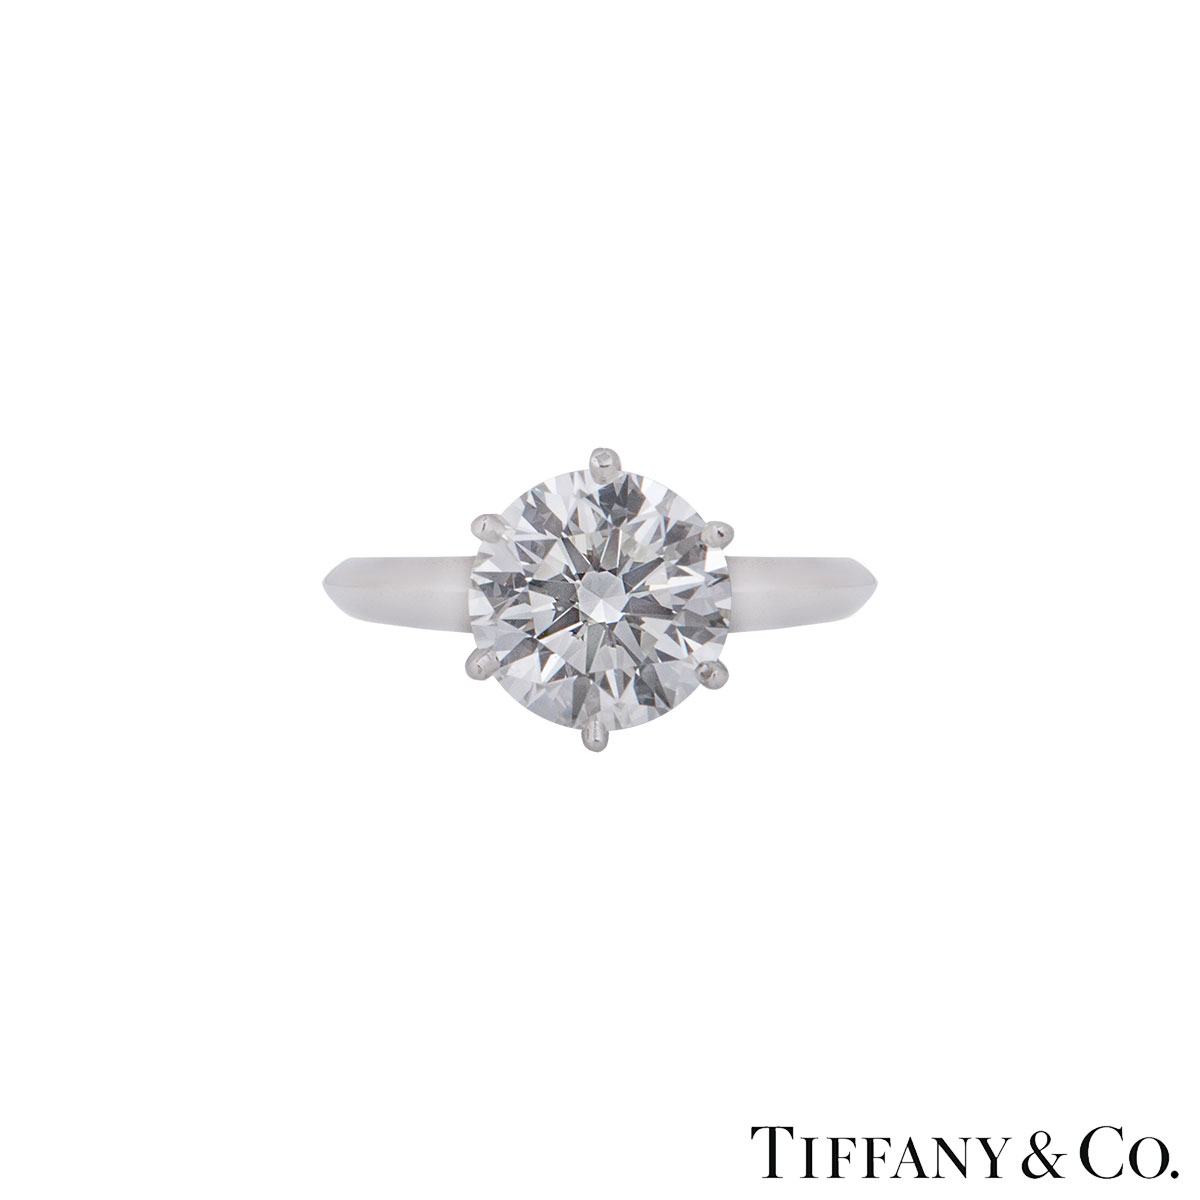 Tiffany & Co. Platinum Diamond Setting Ring 2.17ct H/VS1